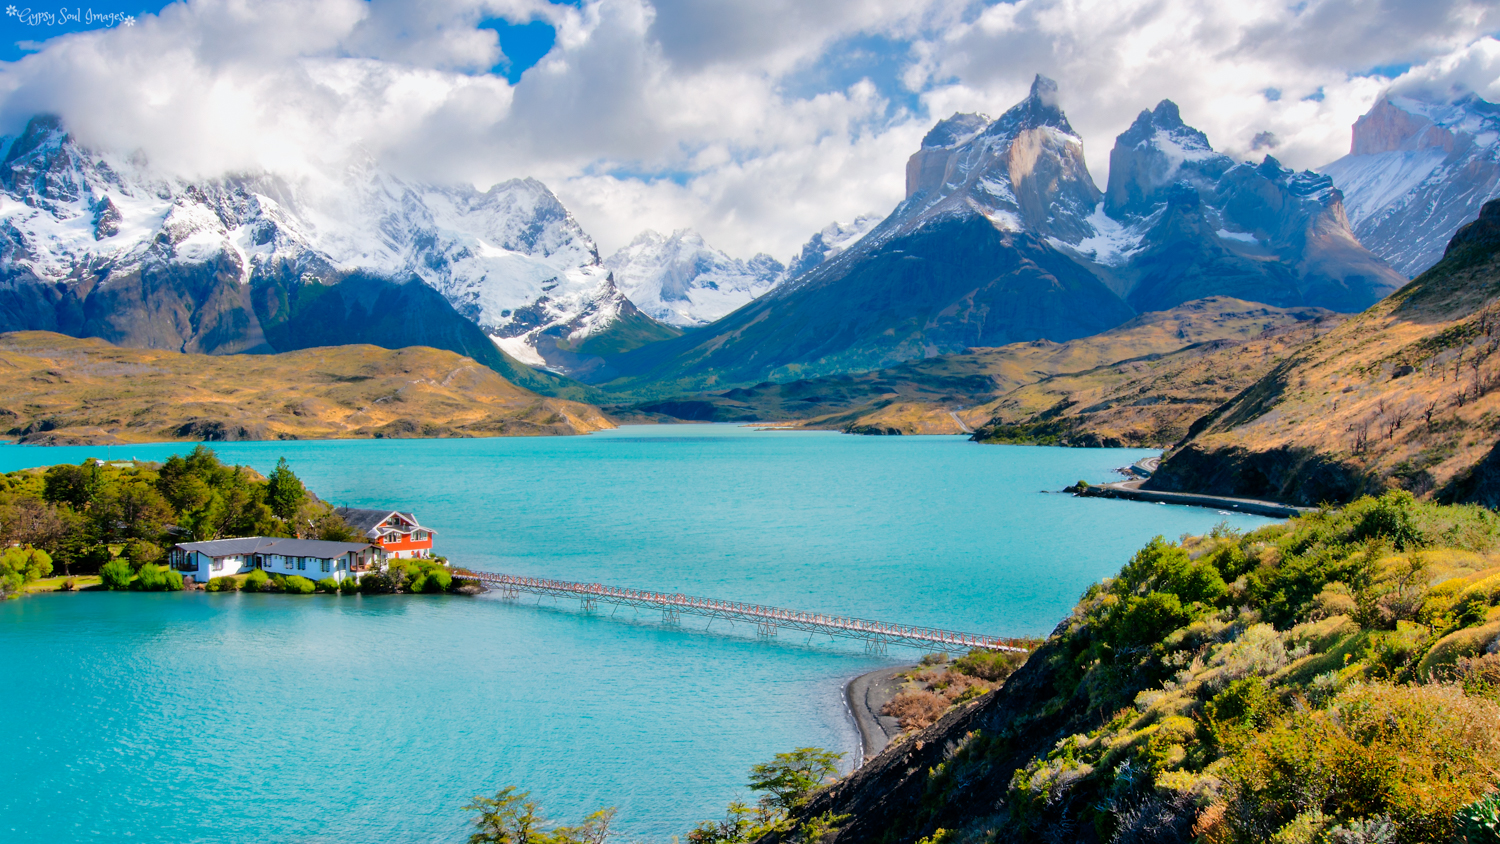 Lake Pehoé - Torres del Paine National Park, Chile Purchase this image in a variety of products from   Red Bubble  .